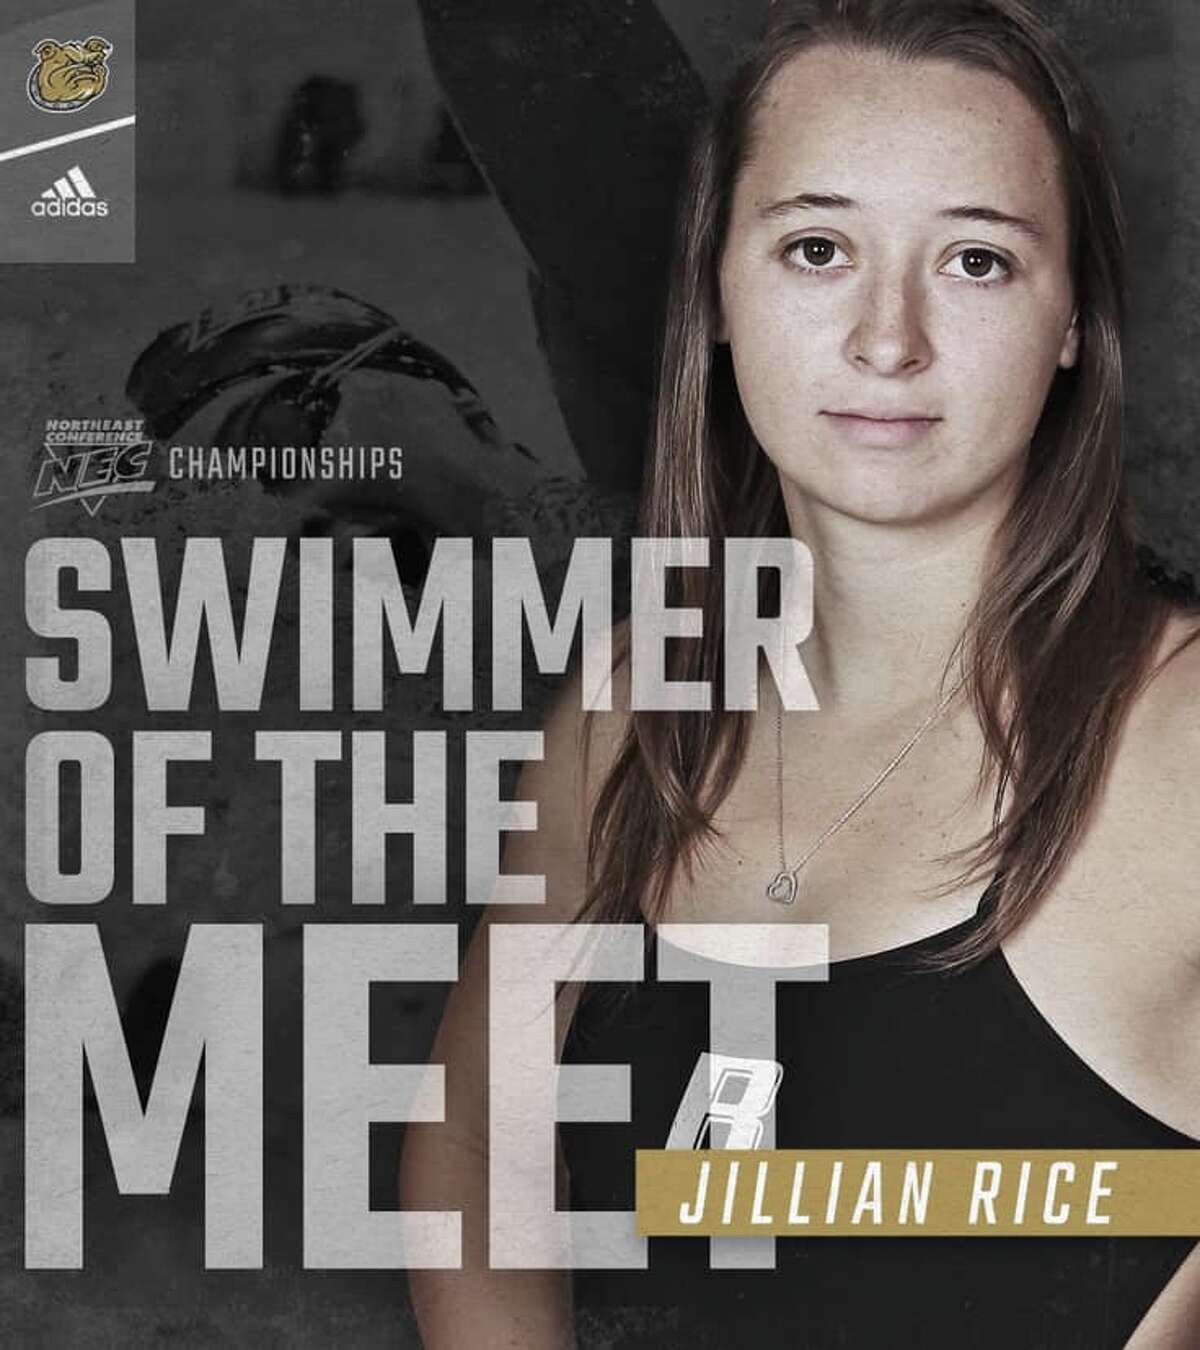 Jillian Rice took home seven gold medals from the NEC Championships.